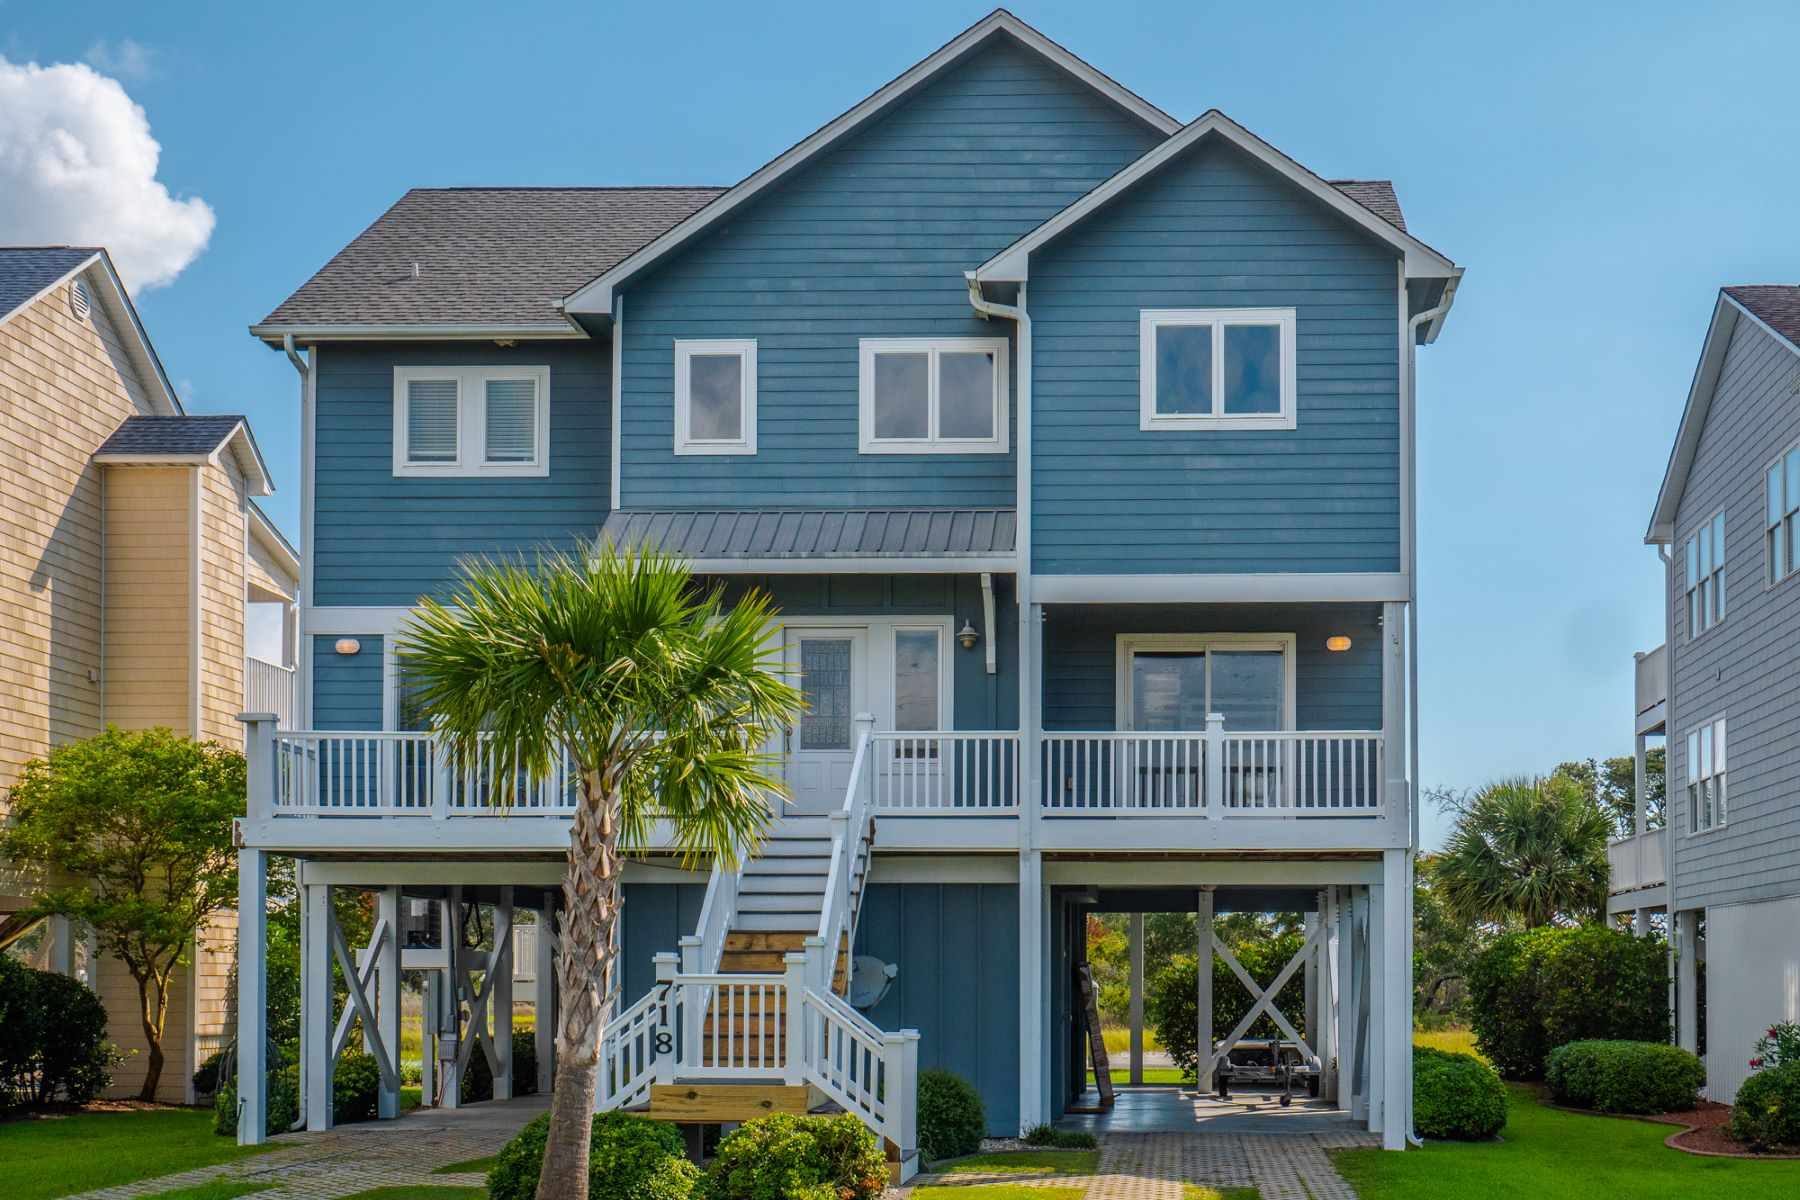 Single Family Homes for Active at Spectacular Water Views in Surf City 718 Roland Ave Surf City, North Carolina 28445 United States